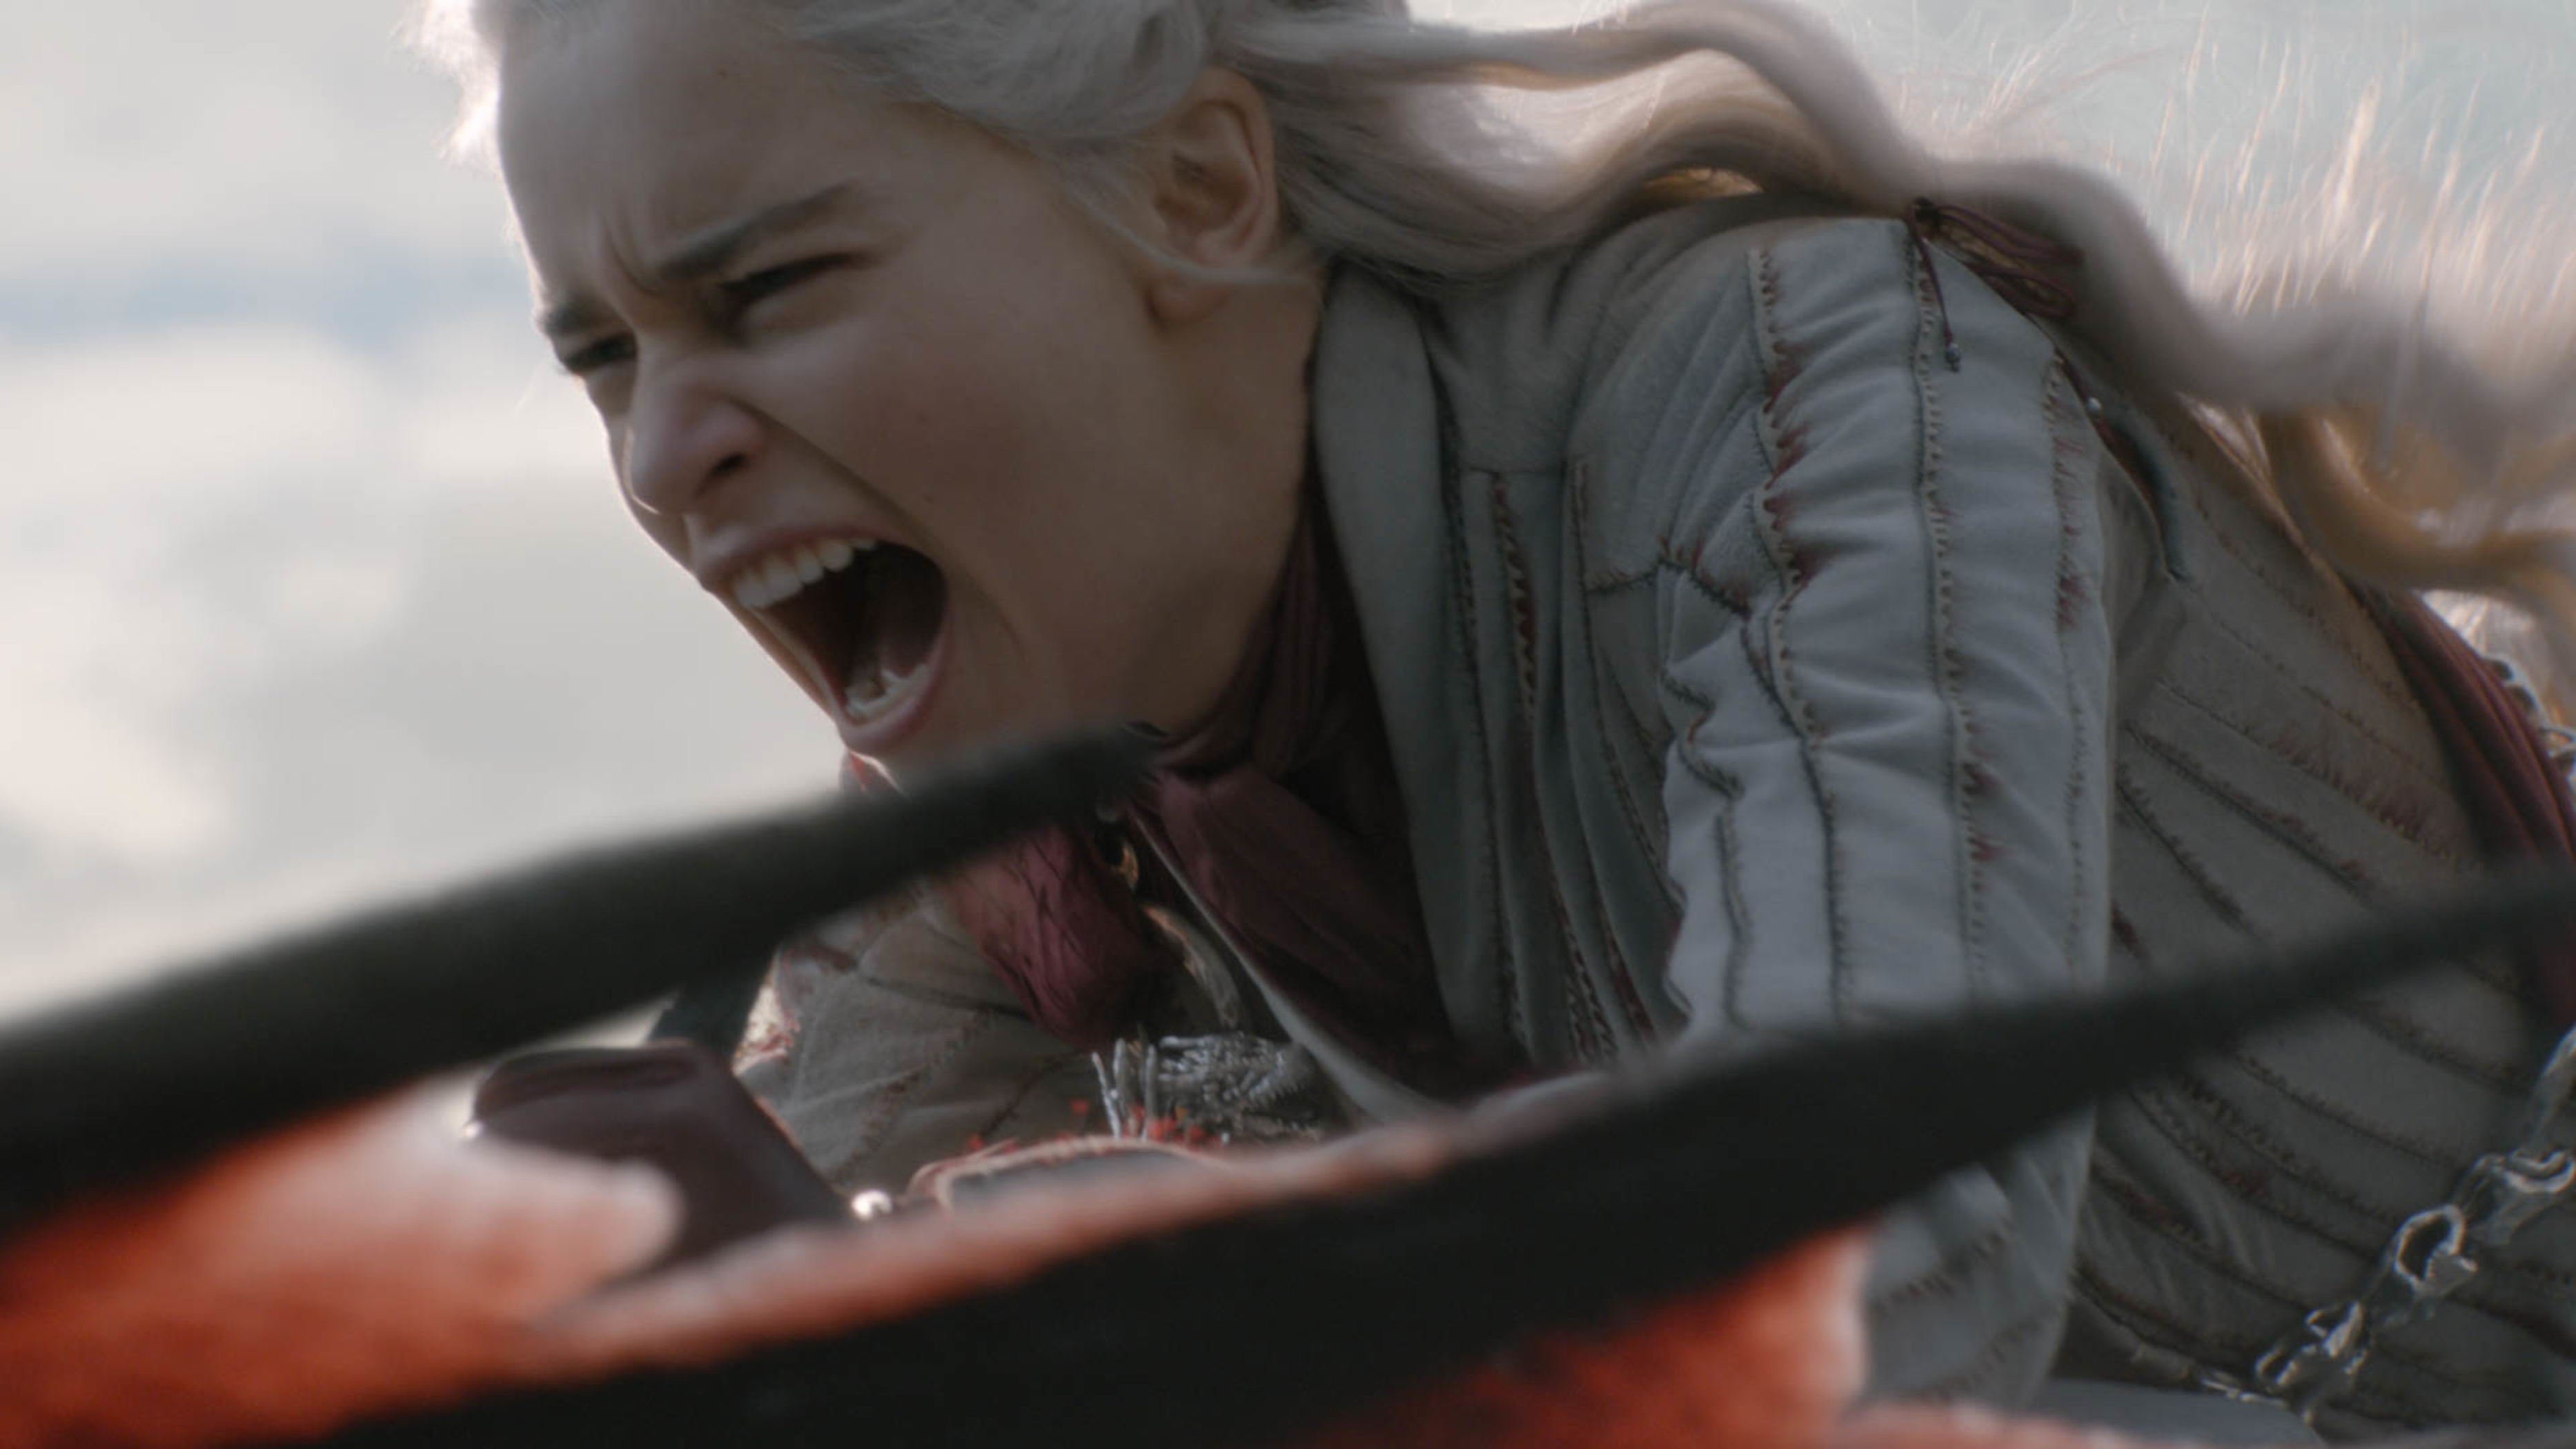 Daenerys charges King's Landing on her dragon on Game of Thrones.